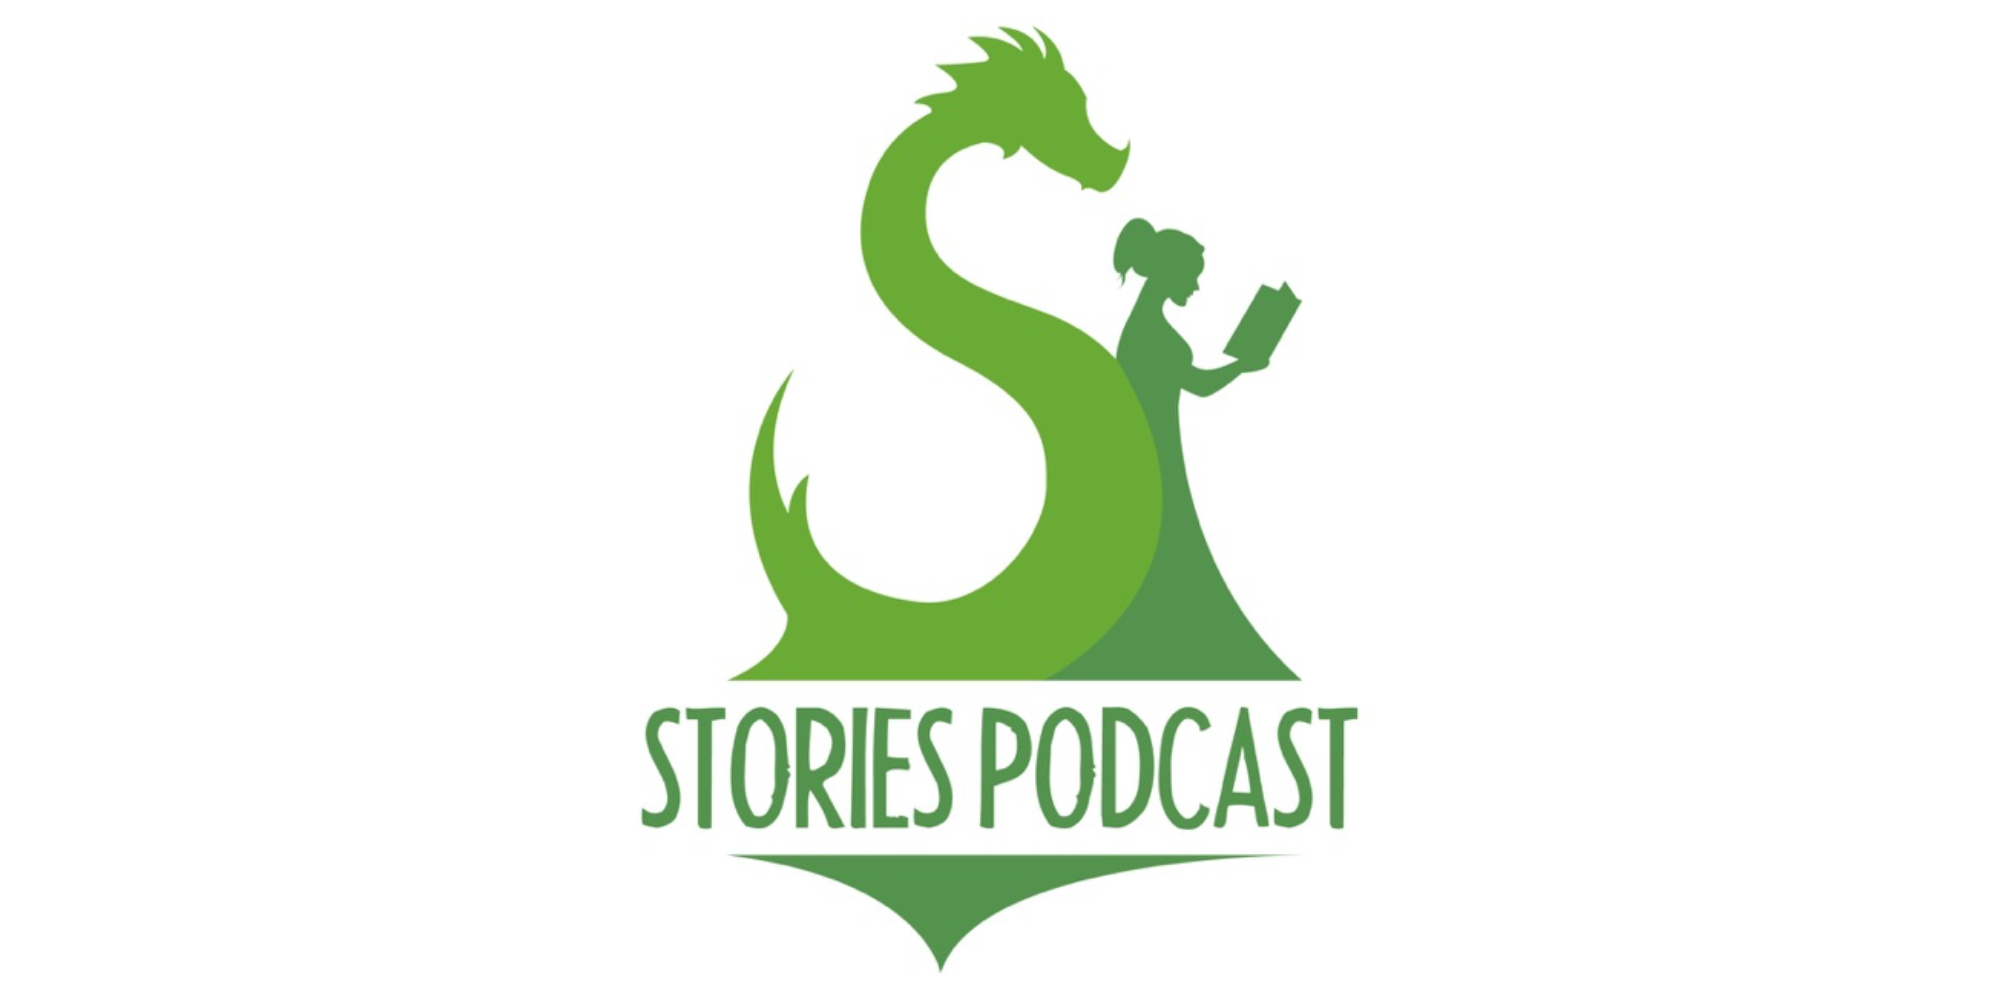 Stories Podcast